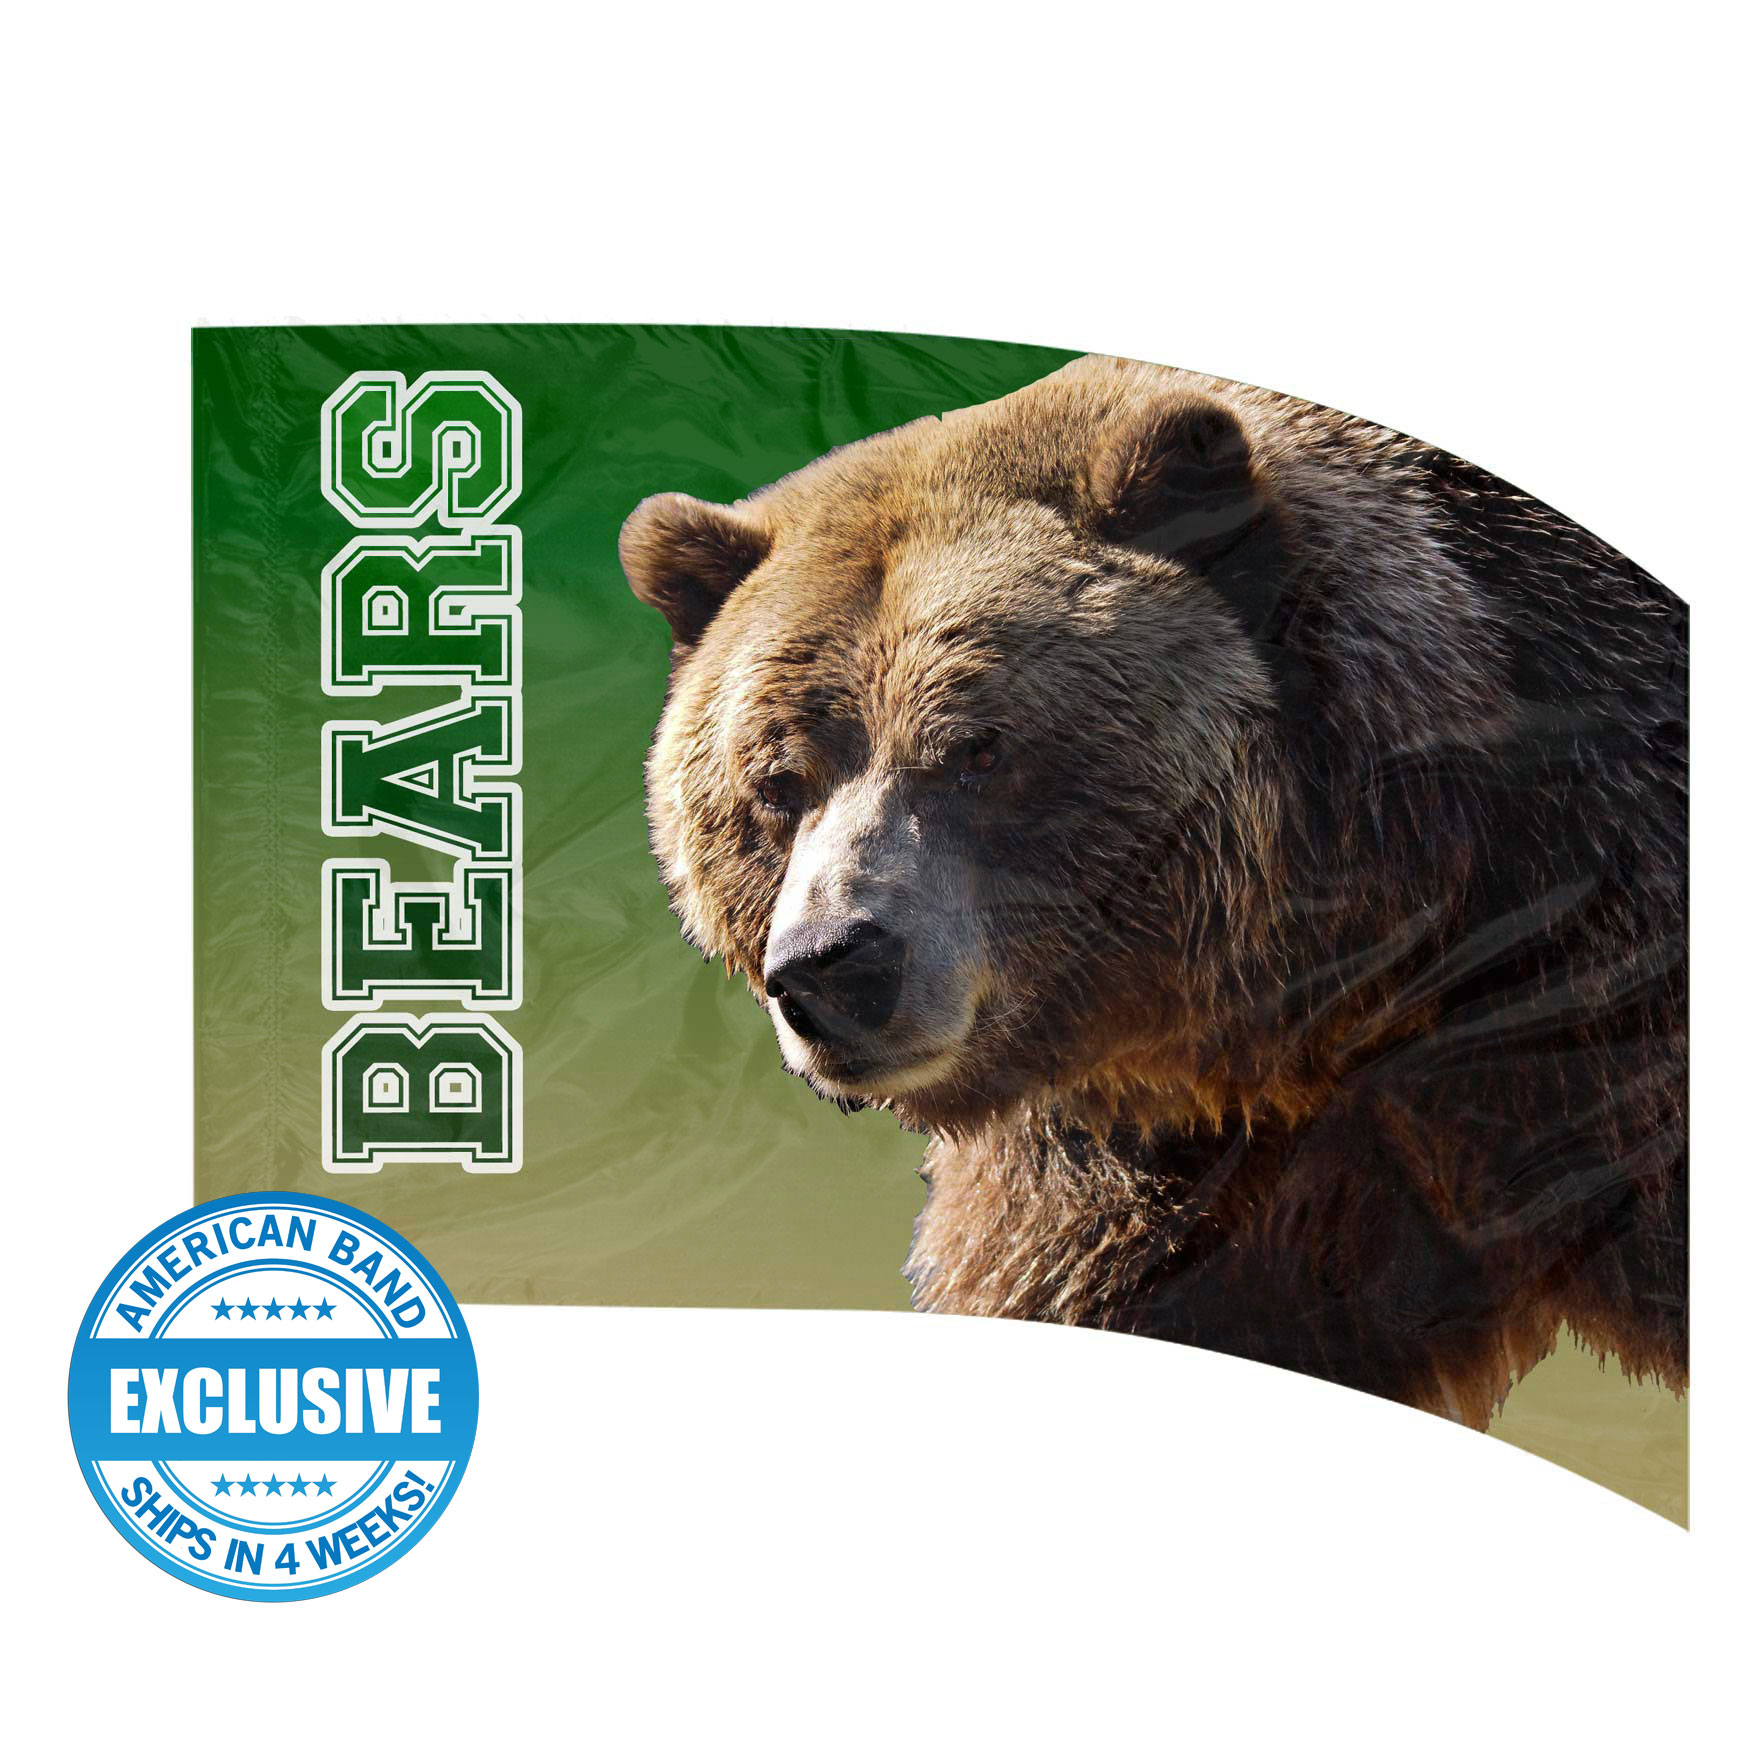 Made-to-Order Digital Mascot Flags - Bear